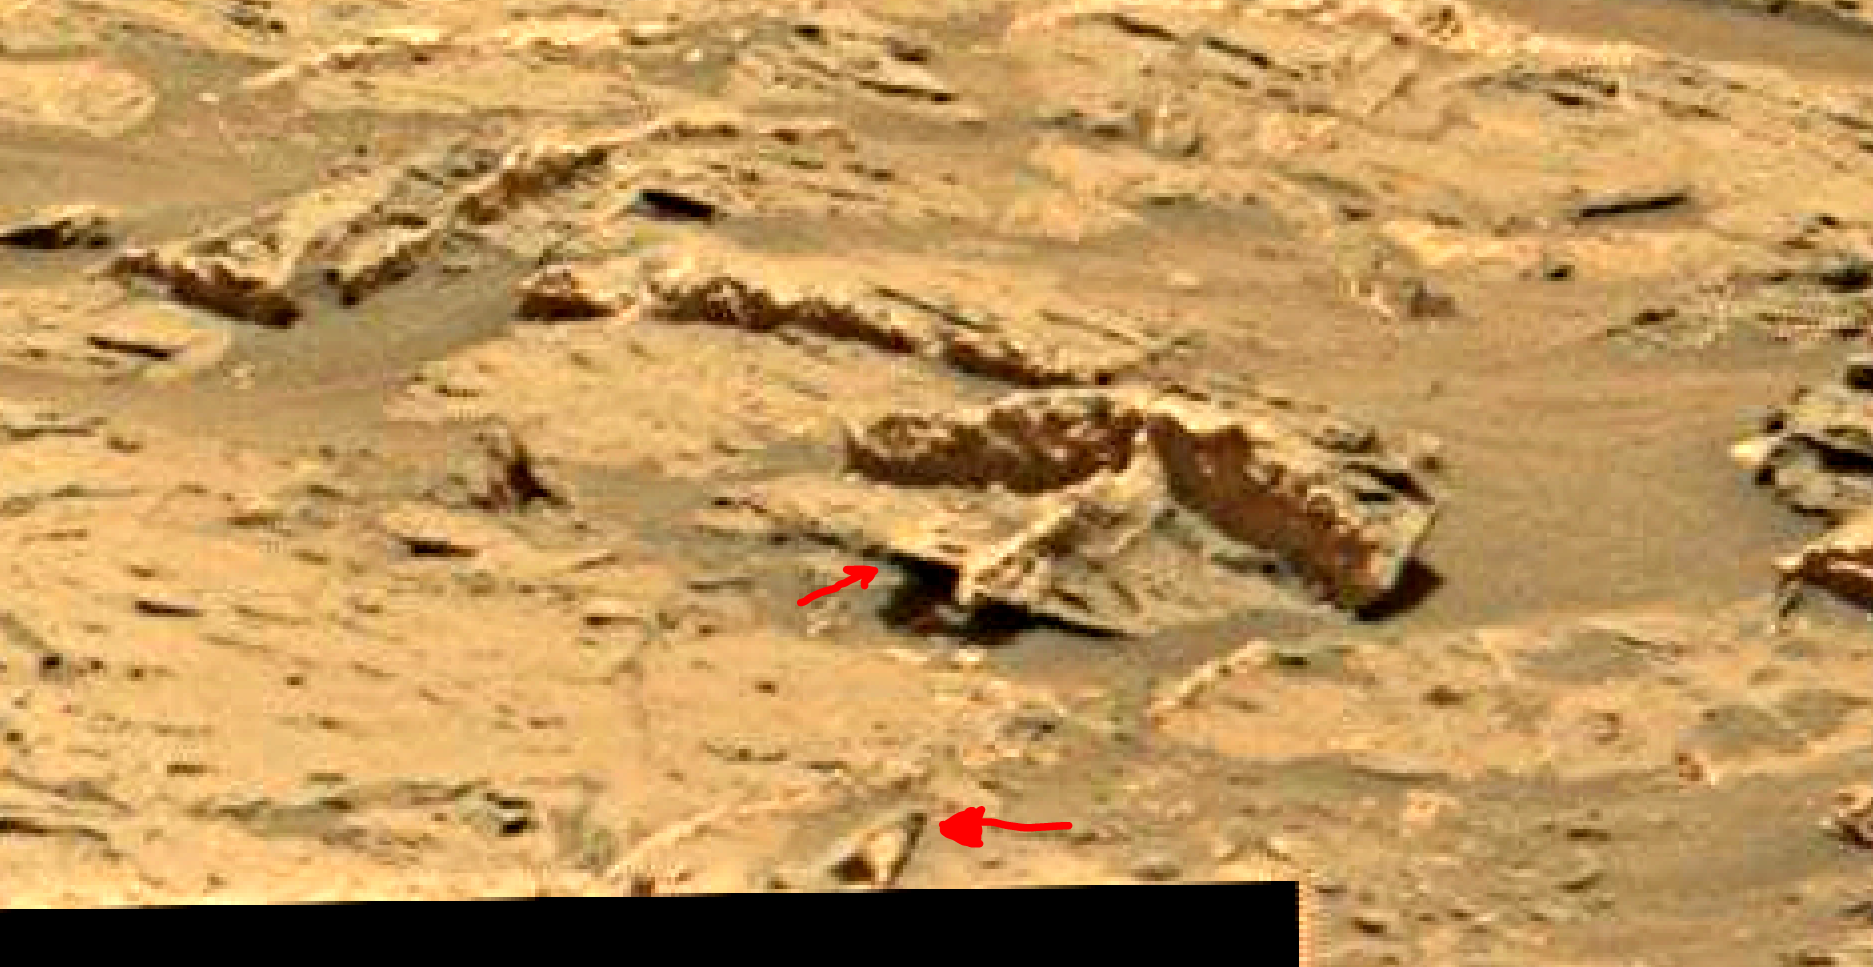 mars sol 1353 anomaly-artifacts 12 was life on mars